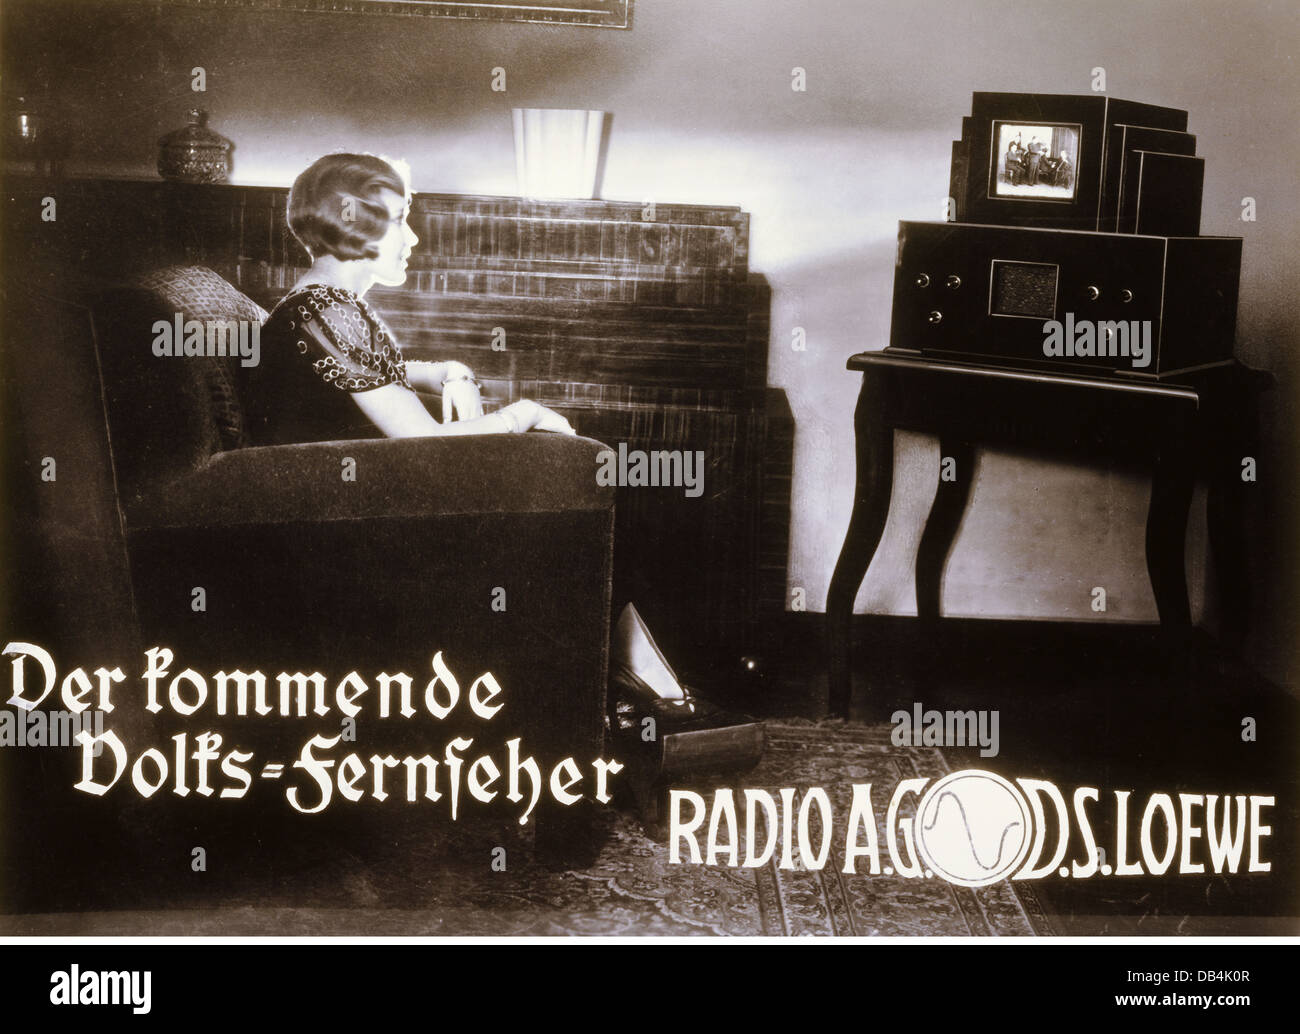 https://i2.wp.com/c8.alamy.com/comp/DB4K0R/broadcast-television-advertising-radio-ag-ds-loewe-der-kommende-volks-DB4K0R.jpg